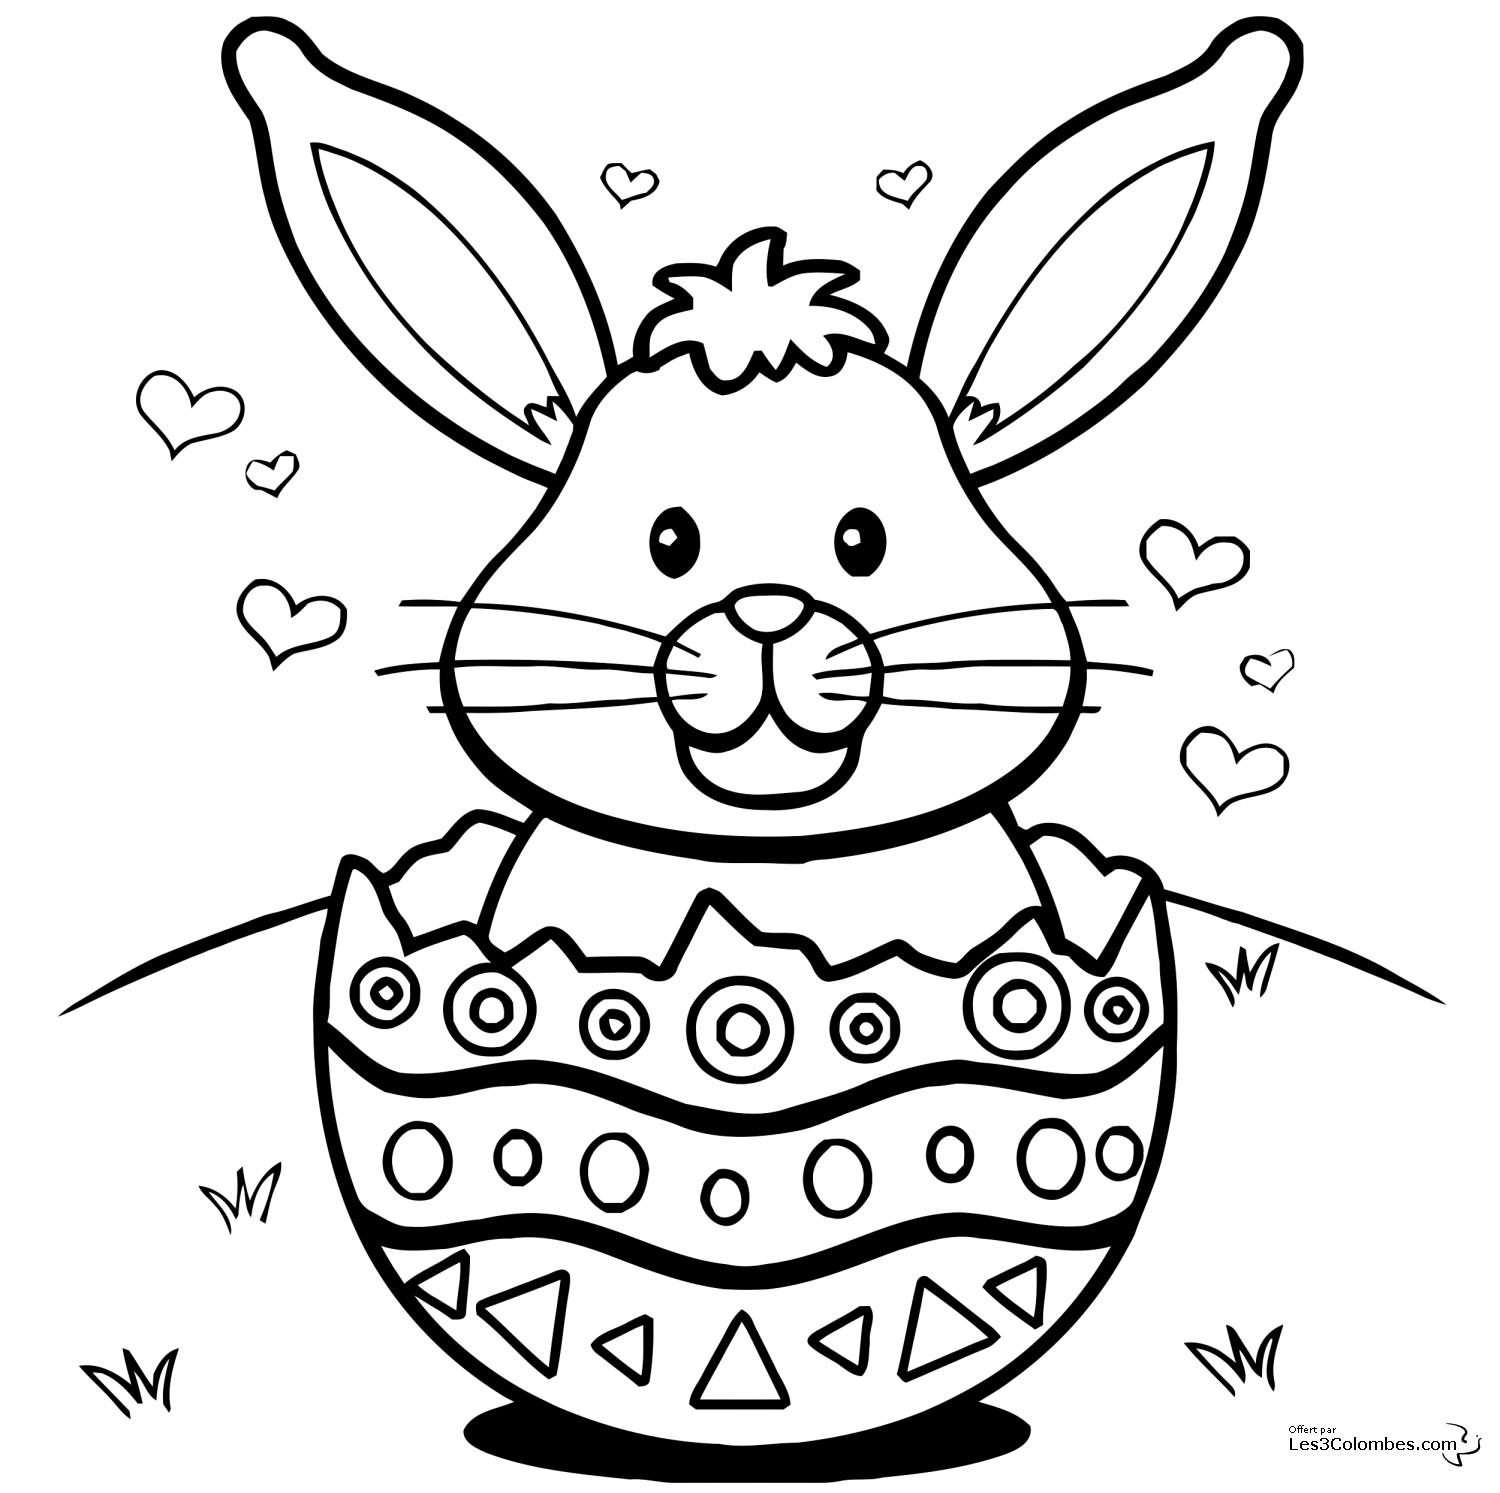 Coloriage singe related keywords suggestions coloriage - Coloriages lapin ...